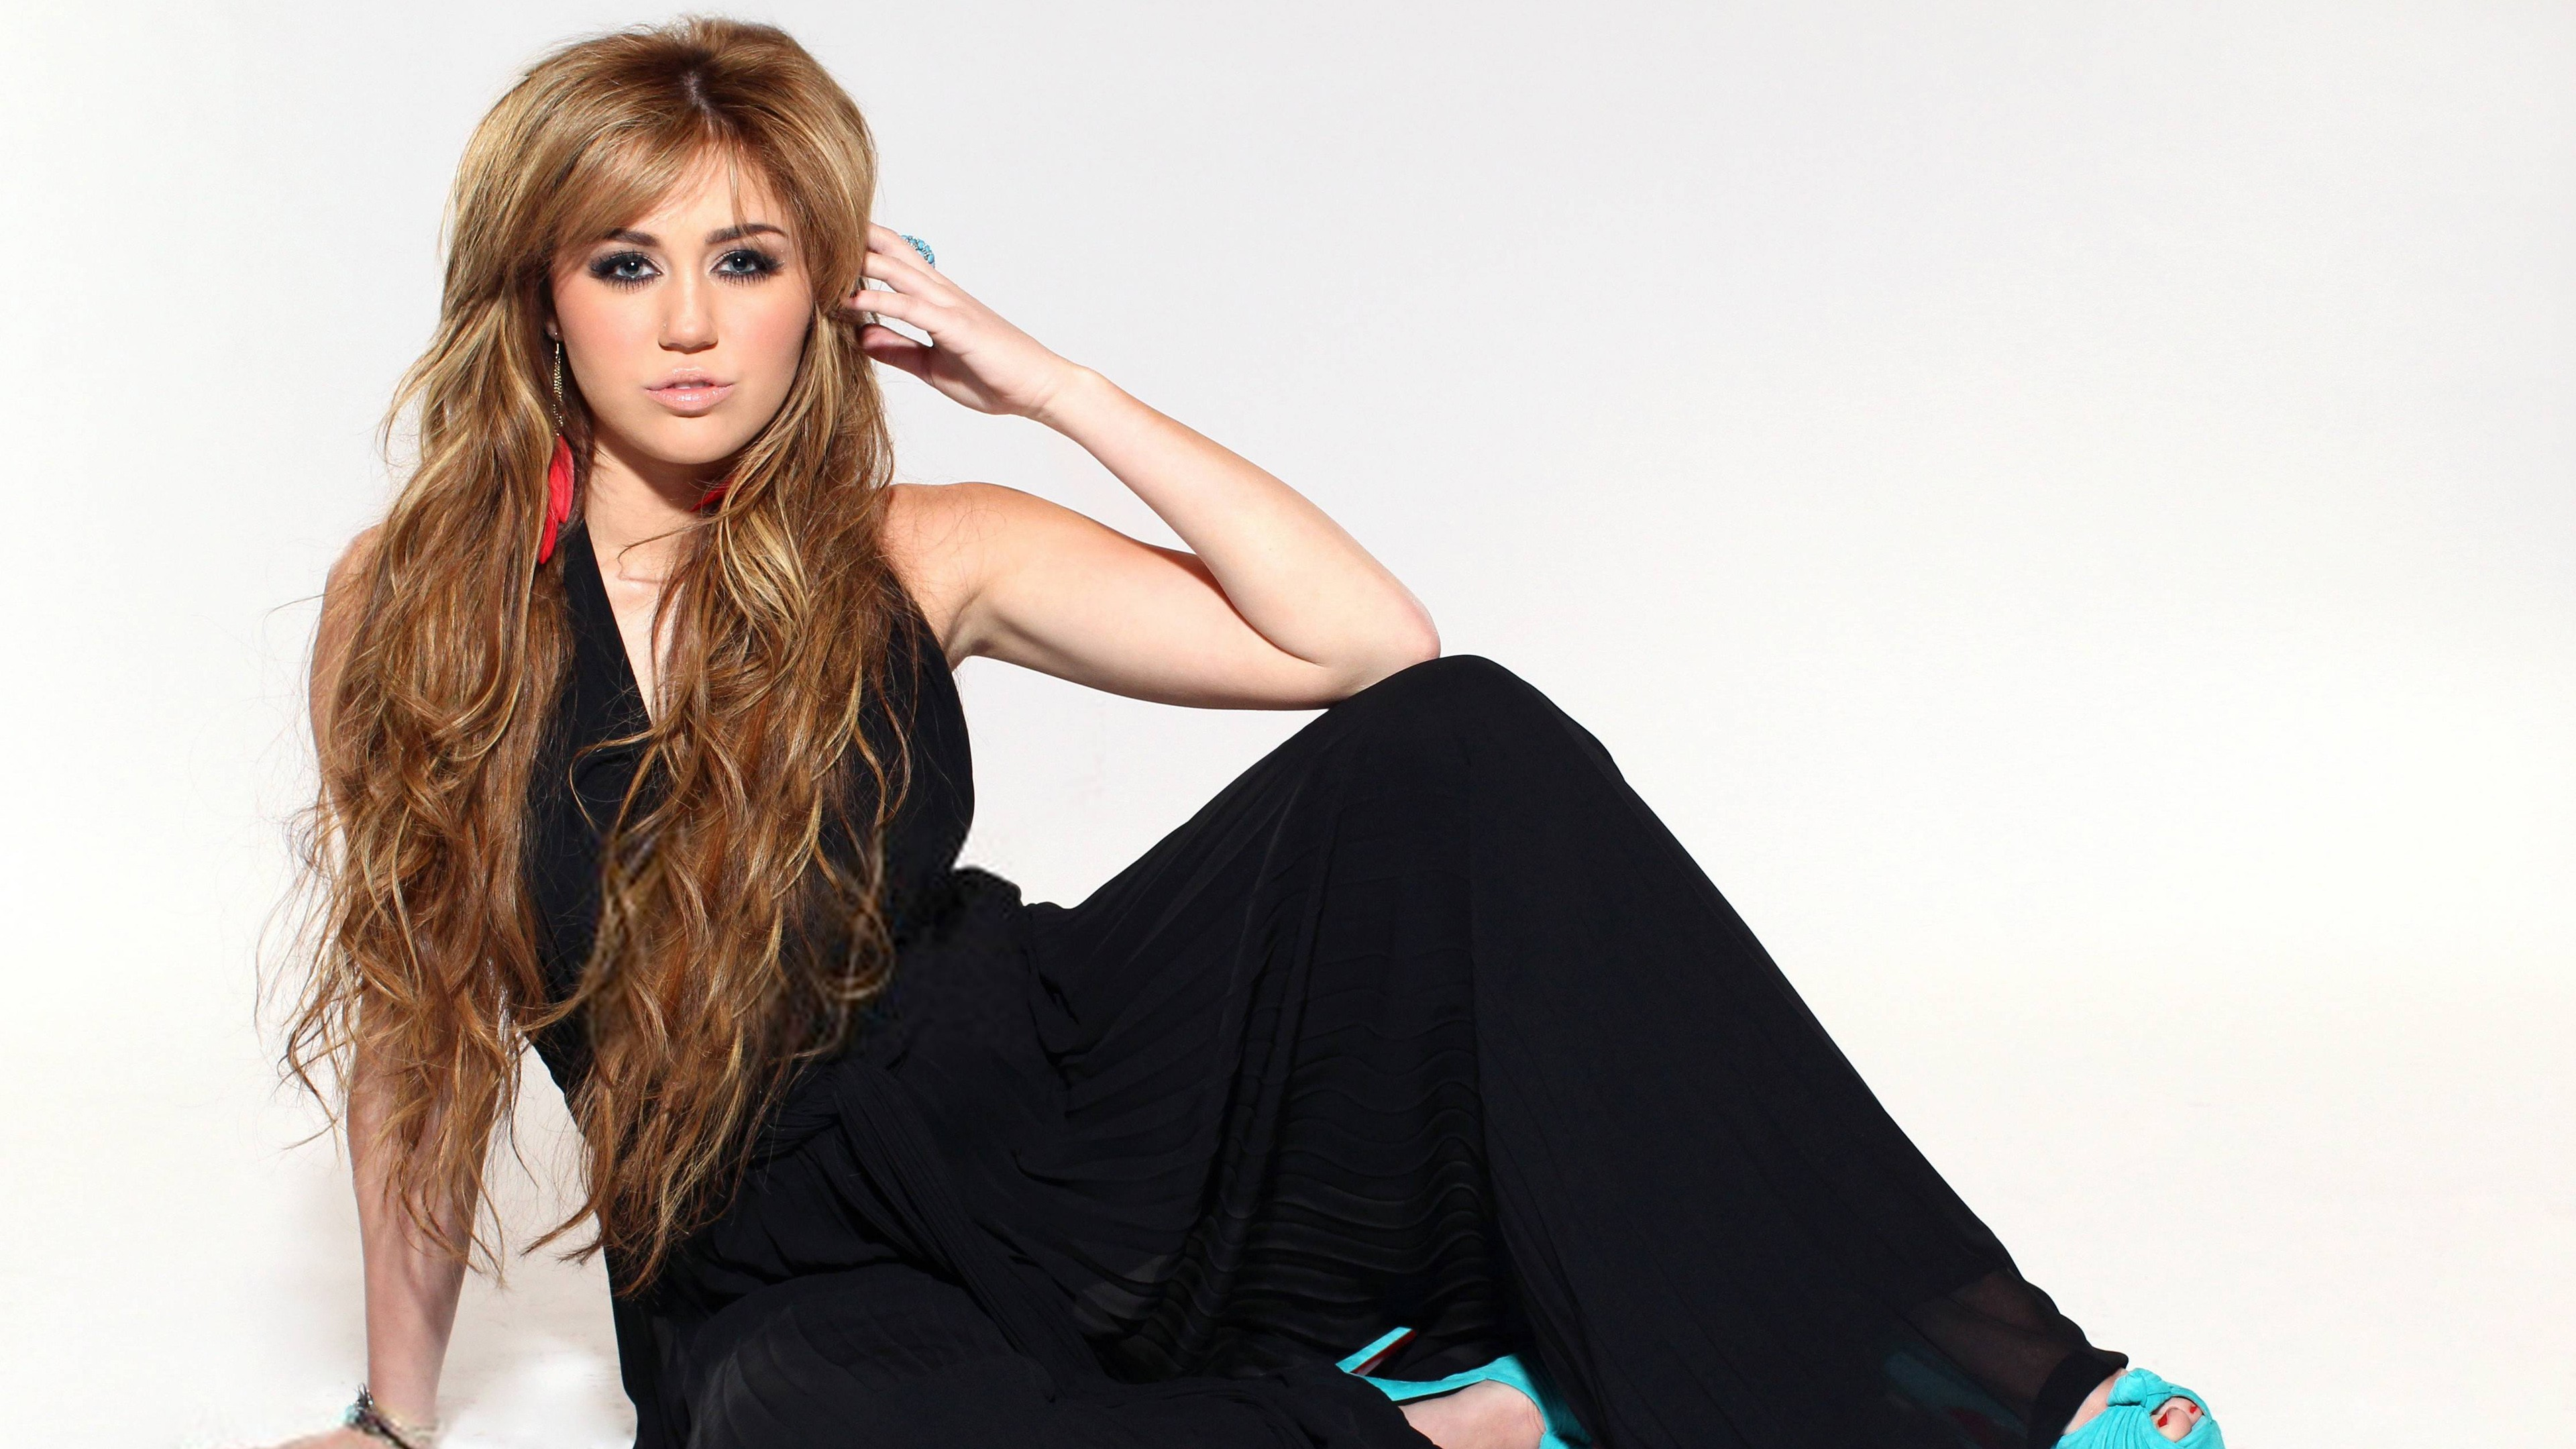 Miley Cyrus-Wallpapers